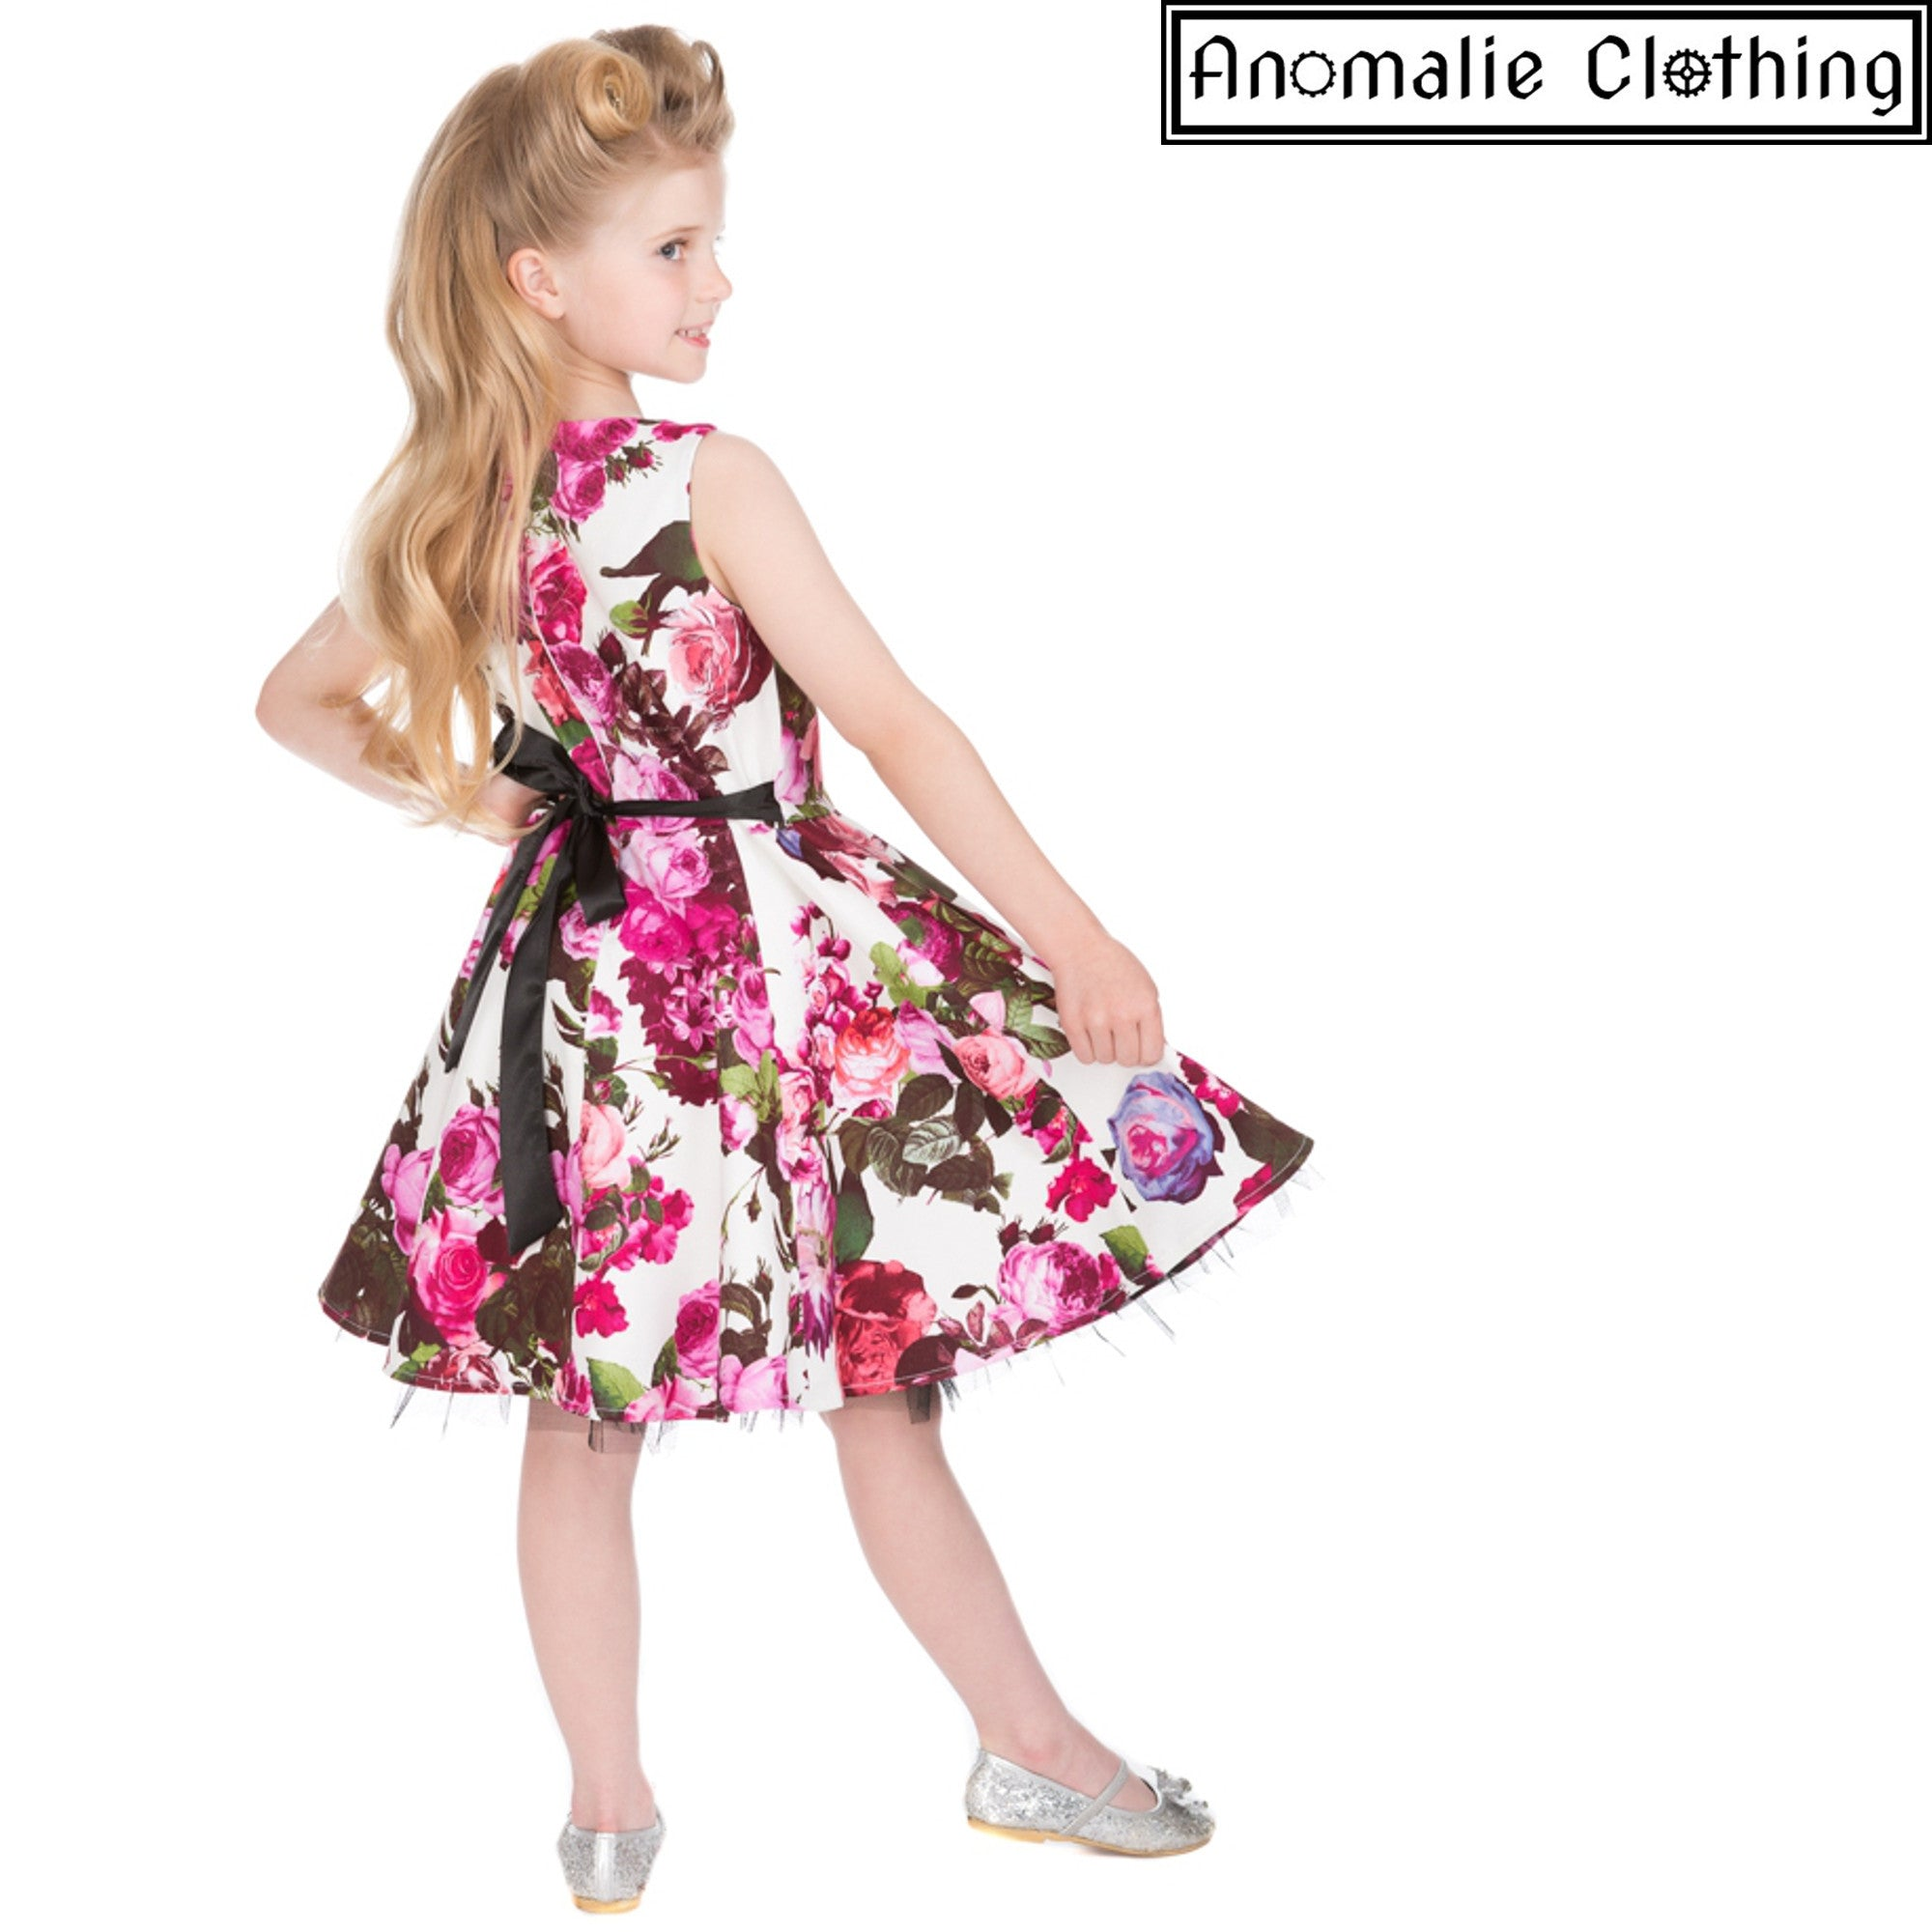 a5986dec1 Hearts and Roses Audrey Pink Floral Childrens Dress 1950s Kids ...